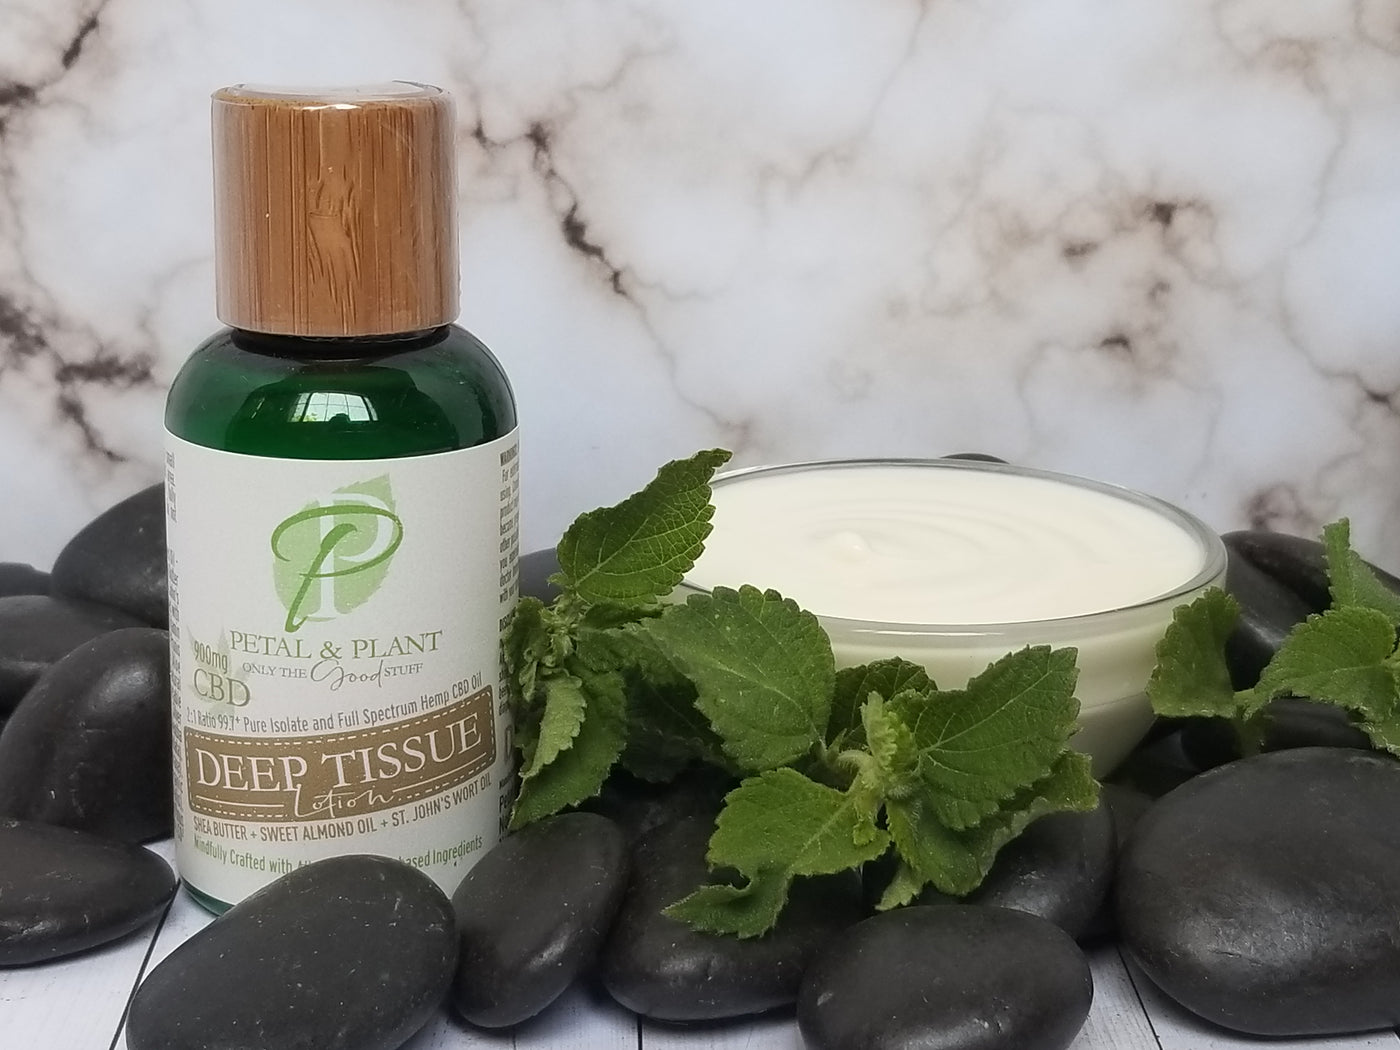 2oz Deep Tissue Hemp CBD Lotion